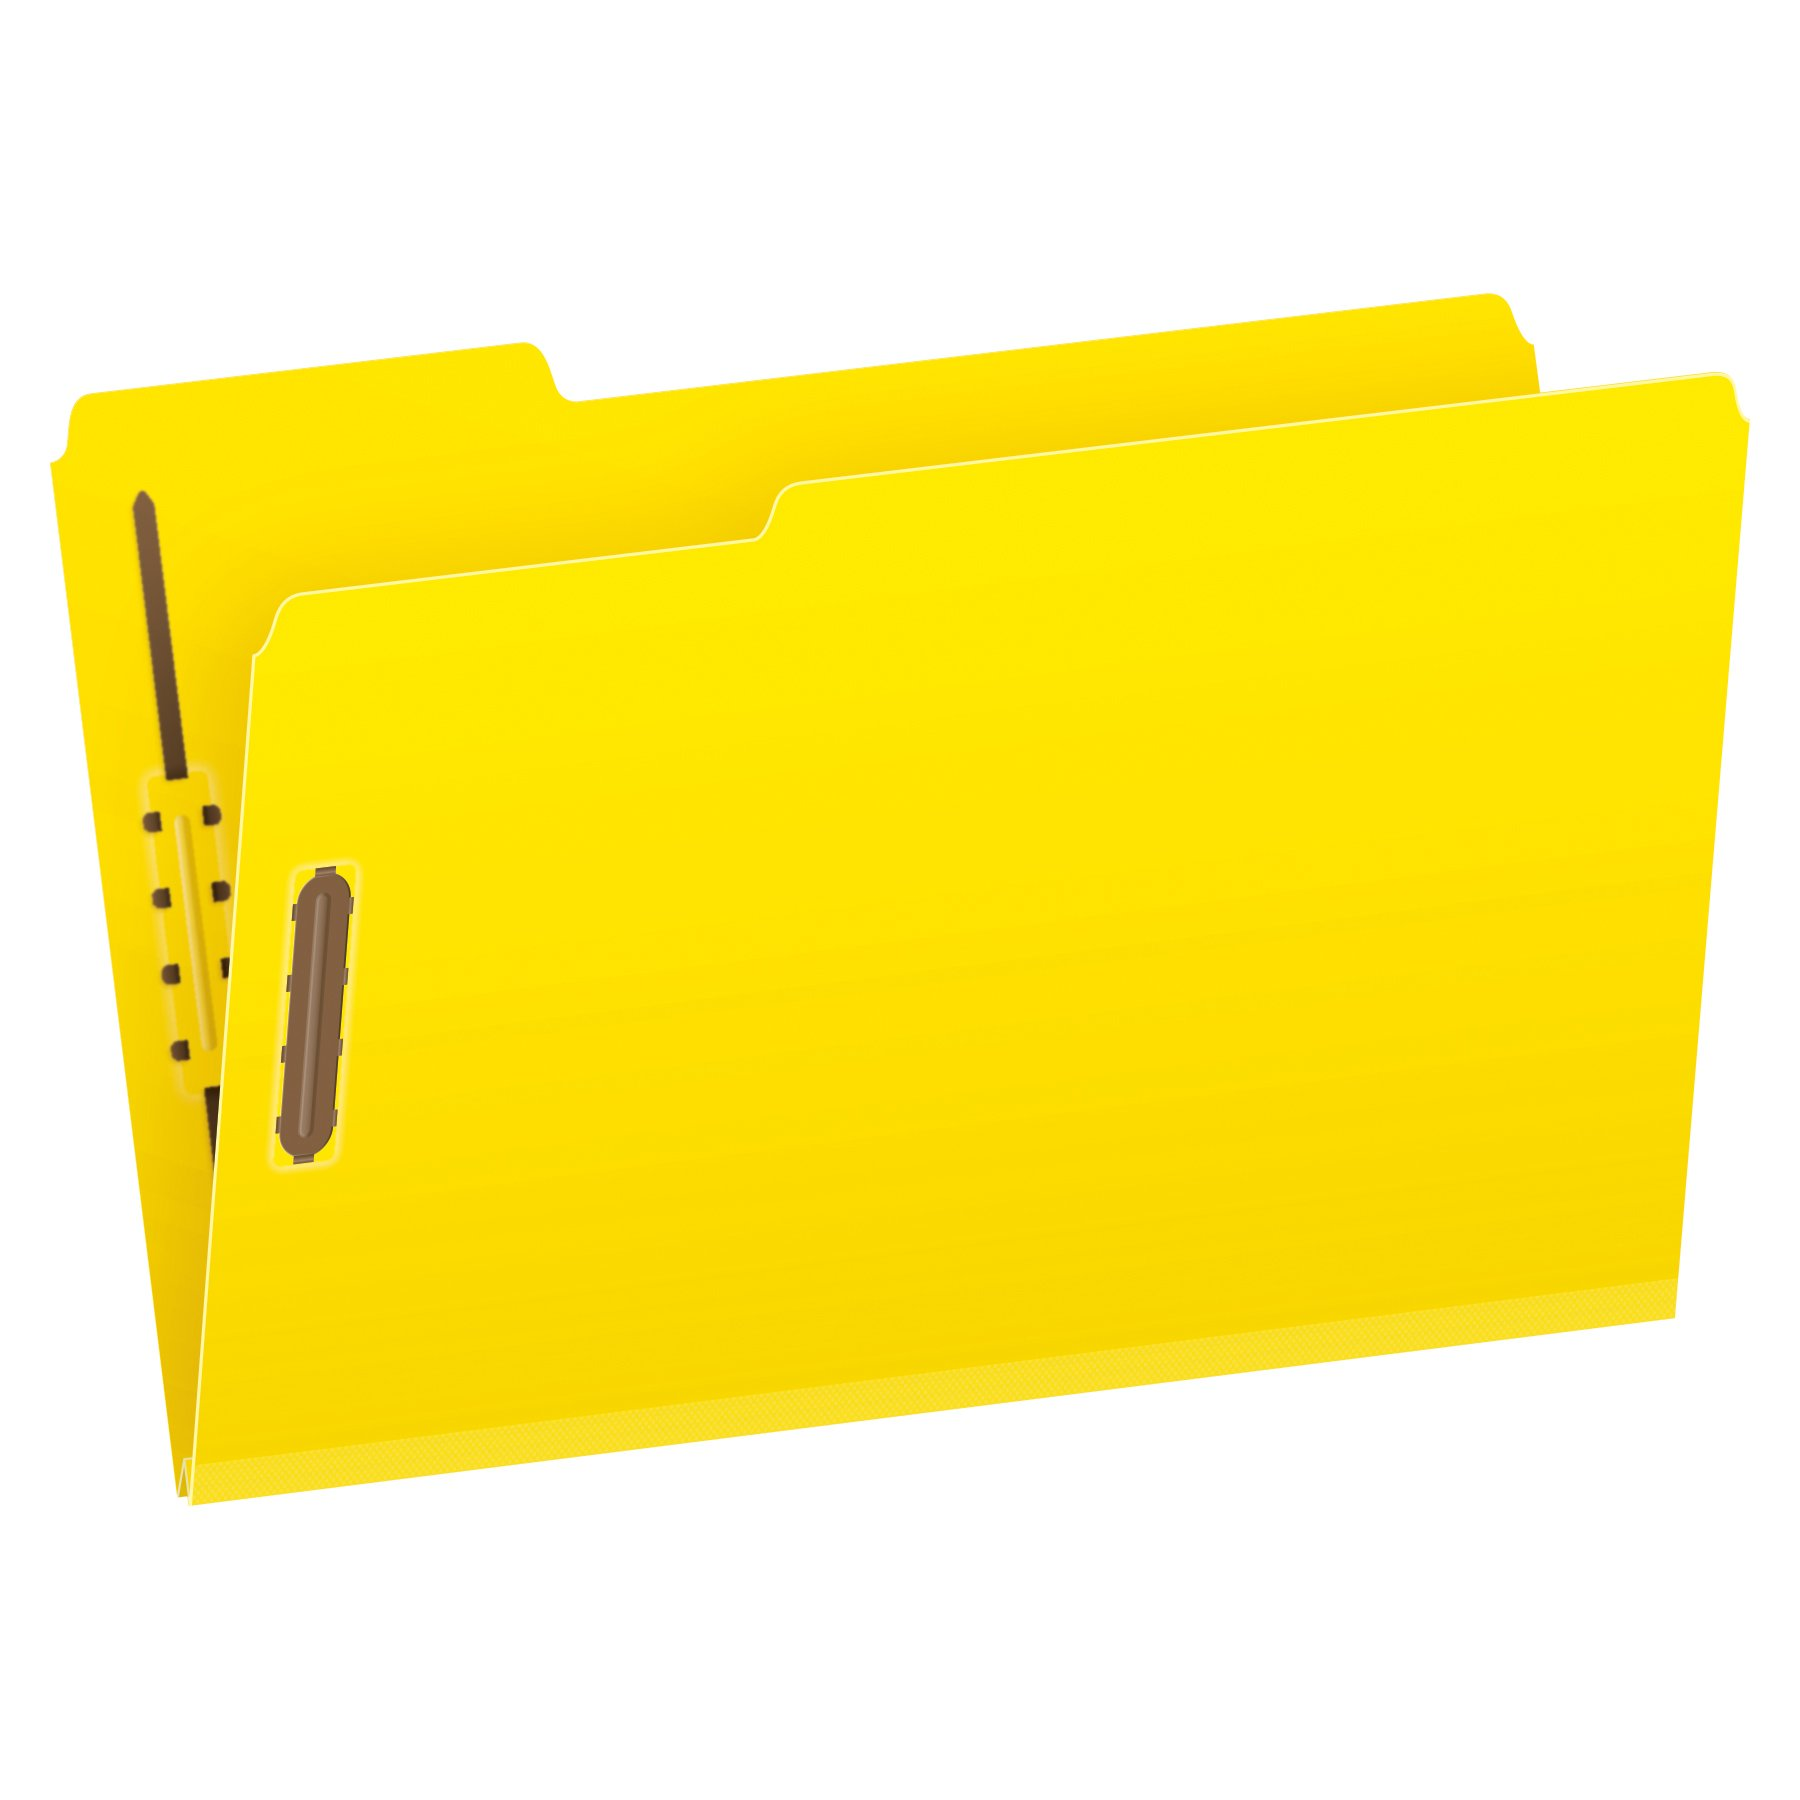 Pendaflex Pressboard Fastener Folders, Legal Size, Yellow, 2'' Expansion, 1/3 Cut, 25/BX (29939)